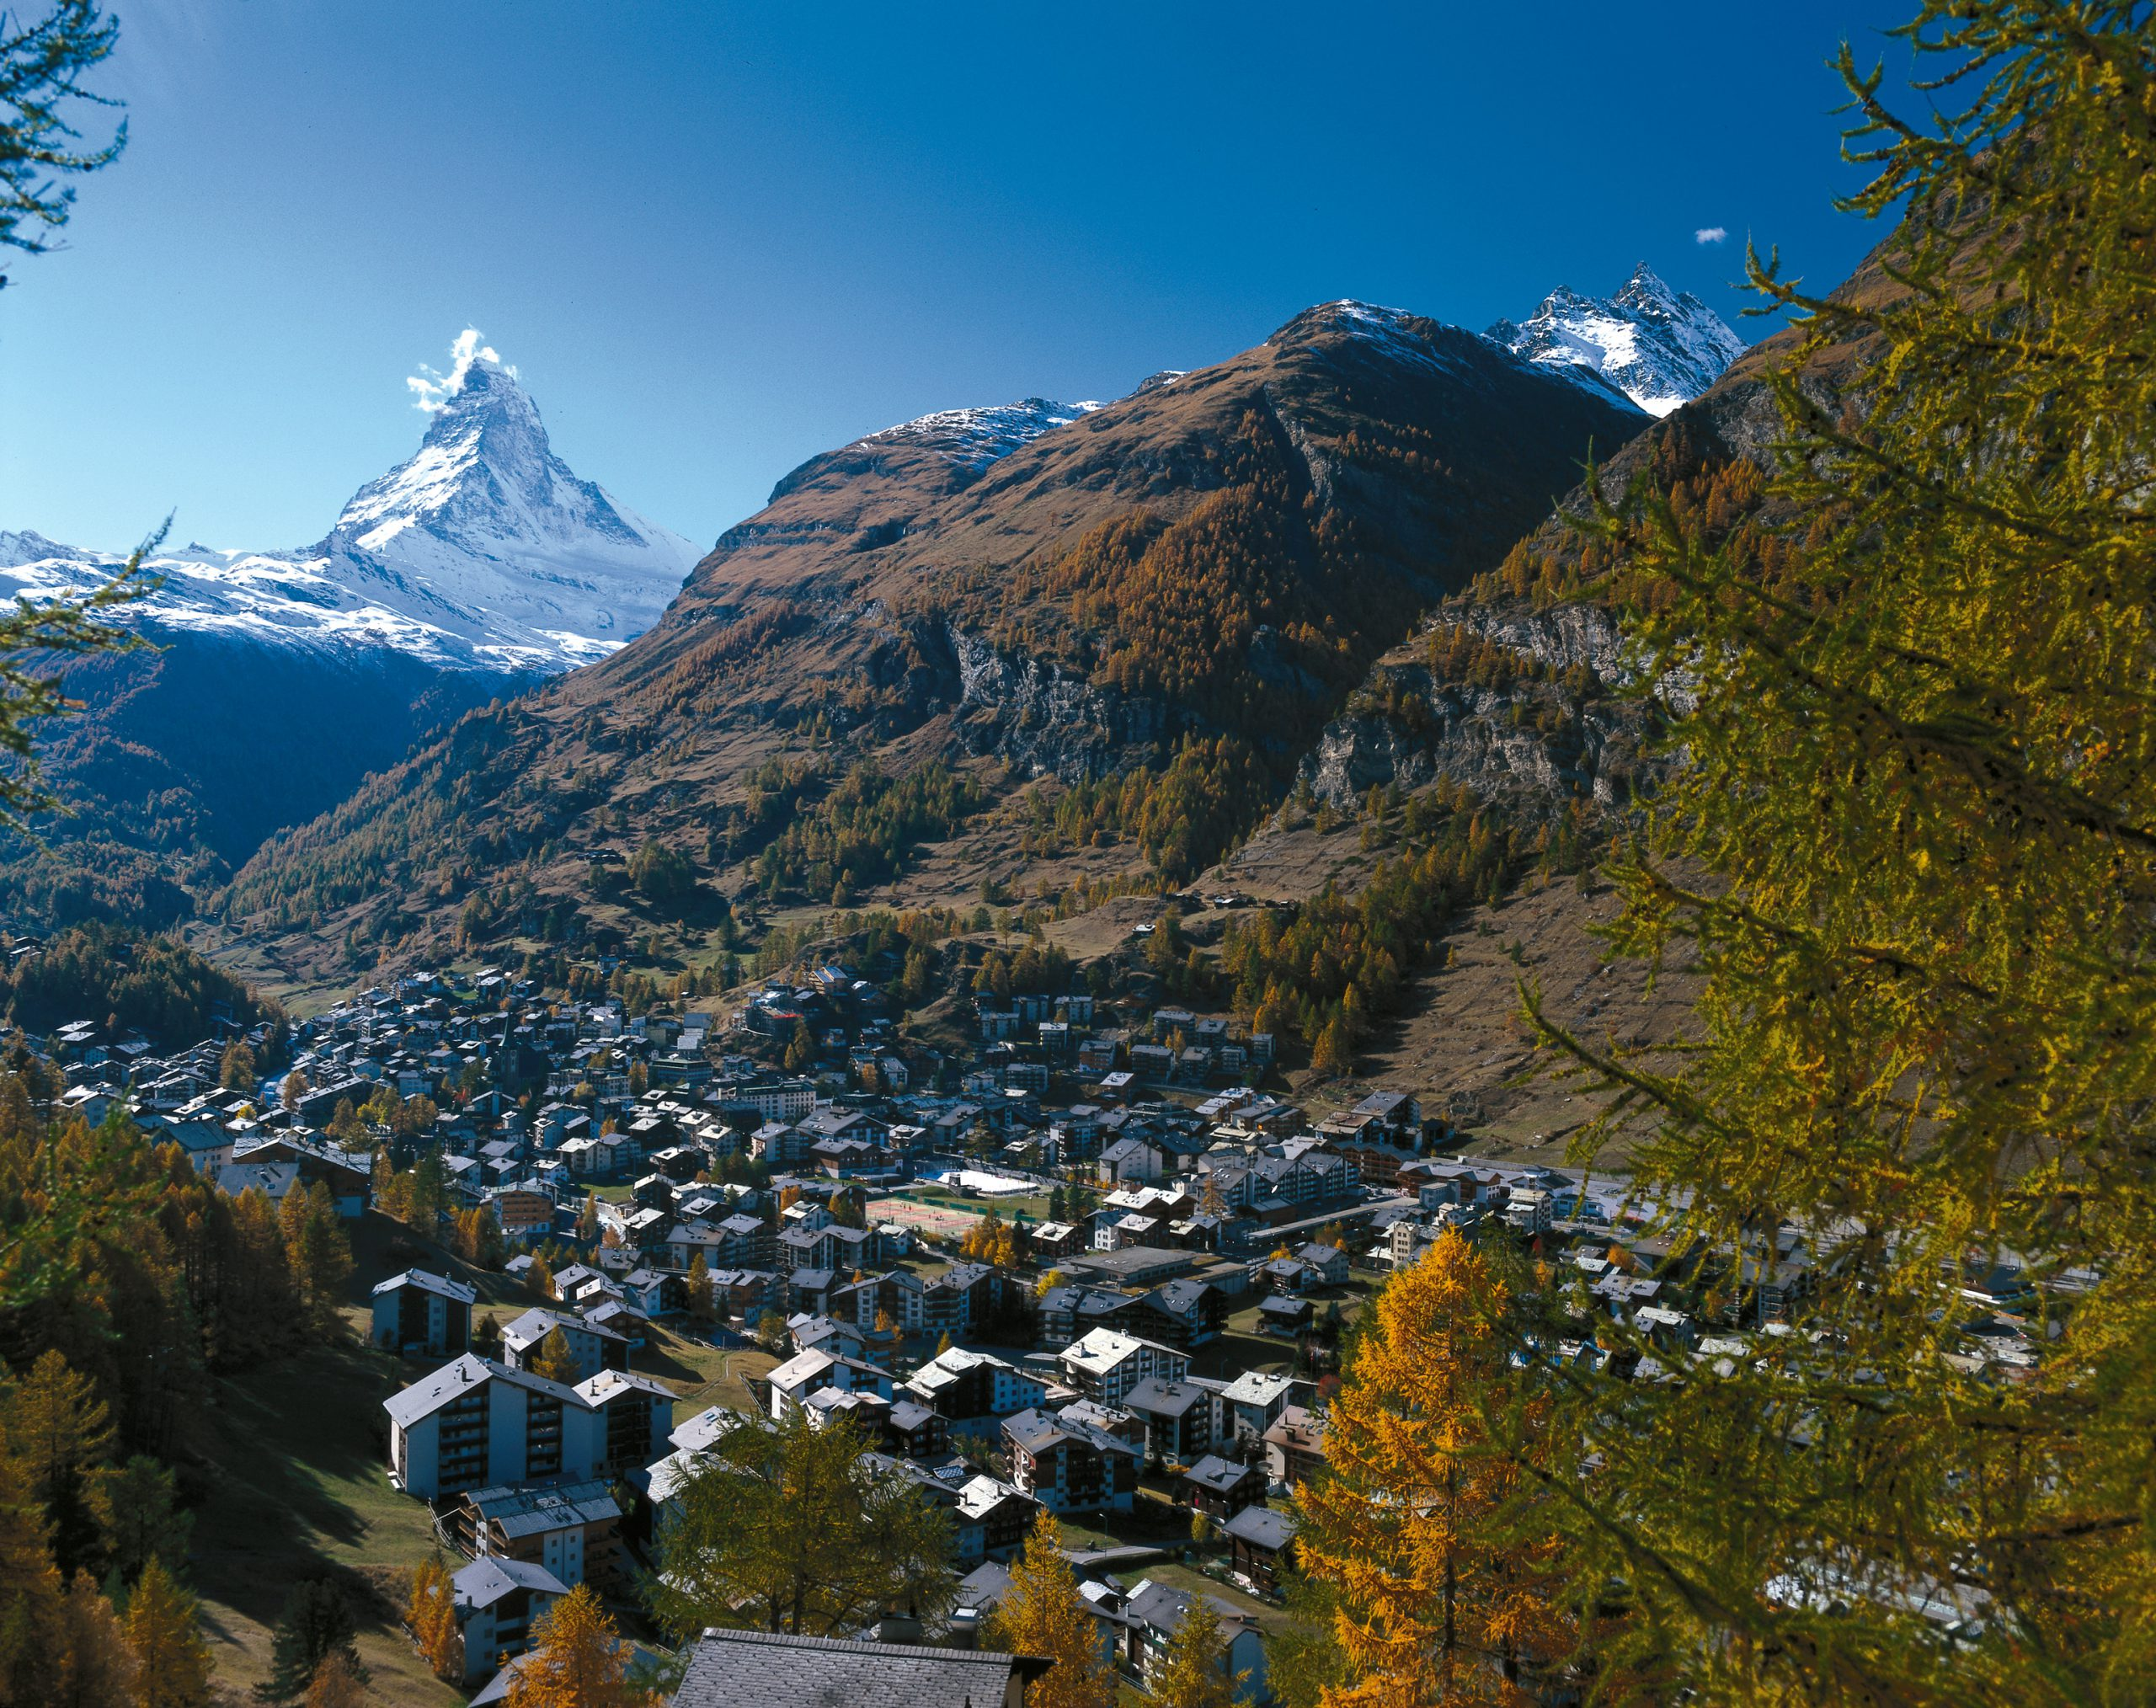 Switzerland Tourism's innovative funding model creates valuable partnerships that mitigate risk